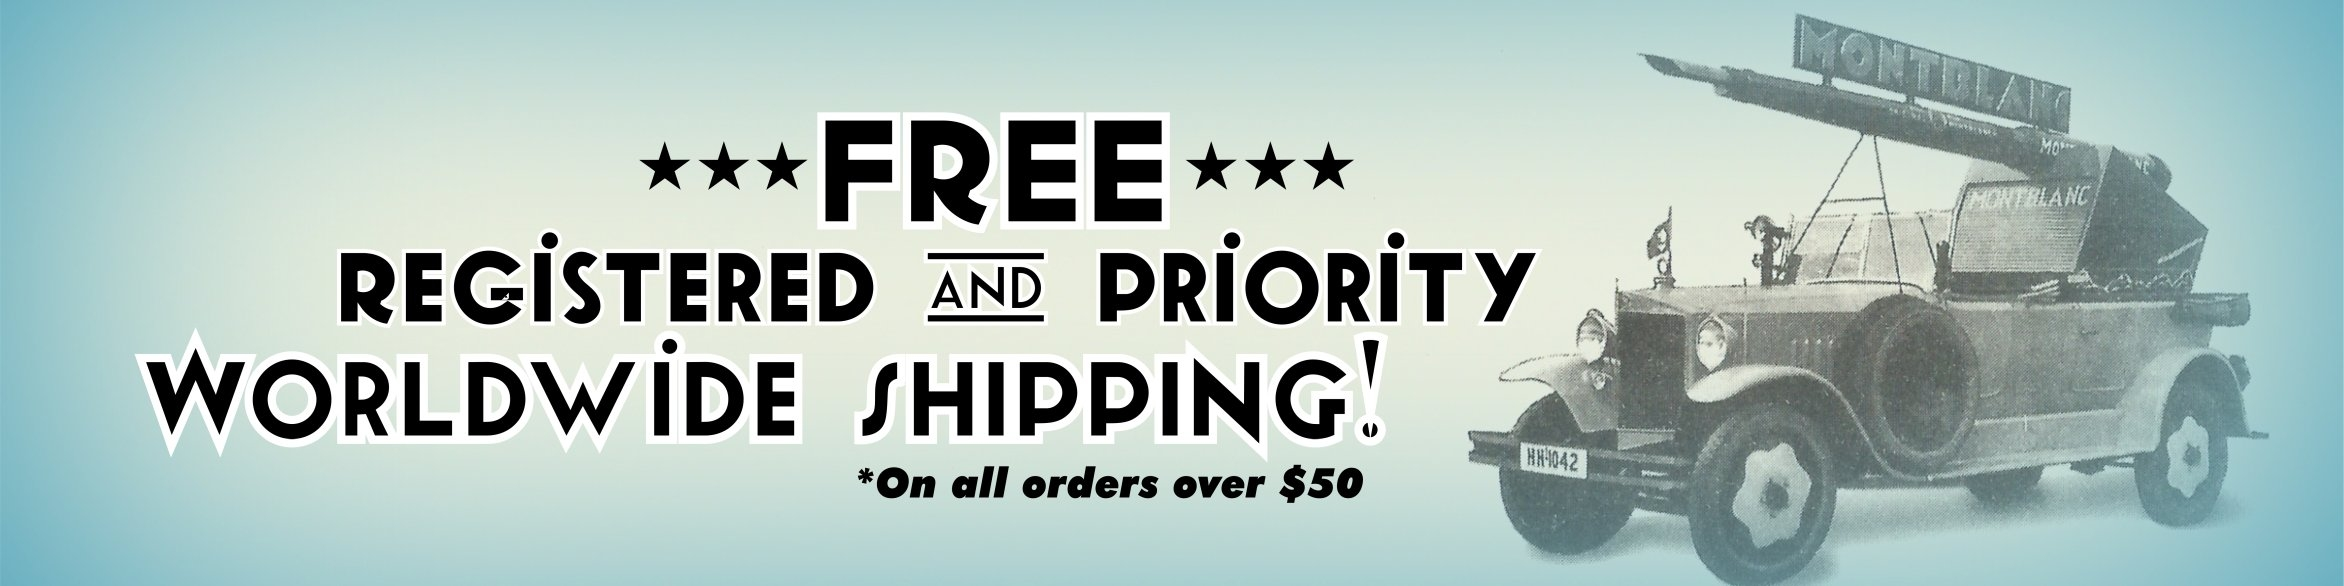 Free registered and priority worldwide shipping